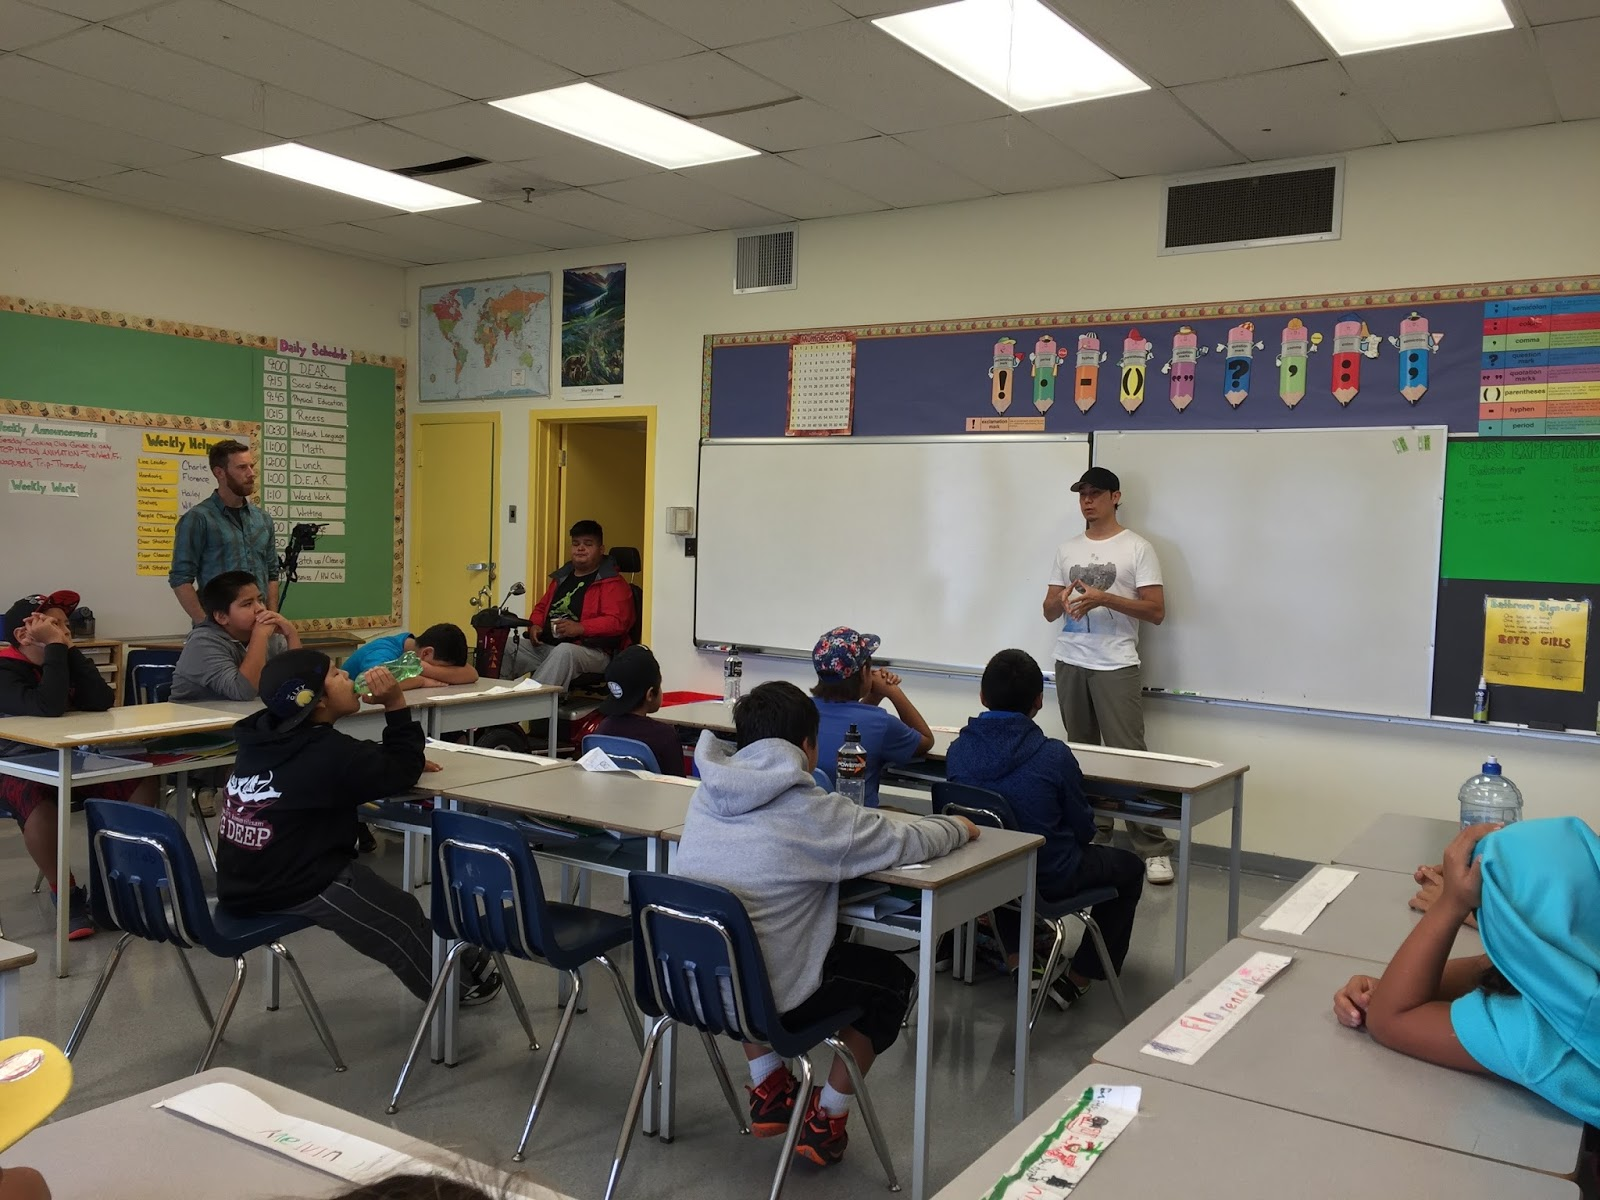 New animation mentor, Stephen Gladue, introduces himself to the class. Teacher Patrick and TA Mel look on.